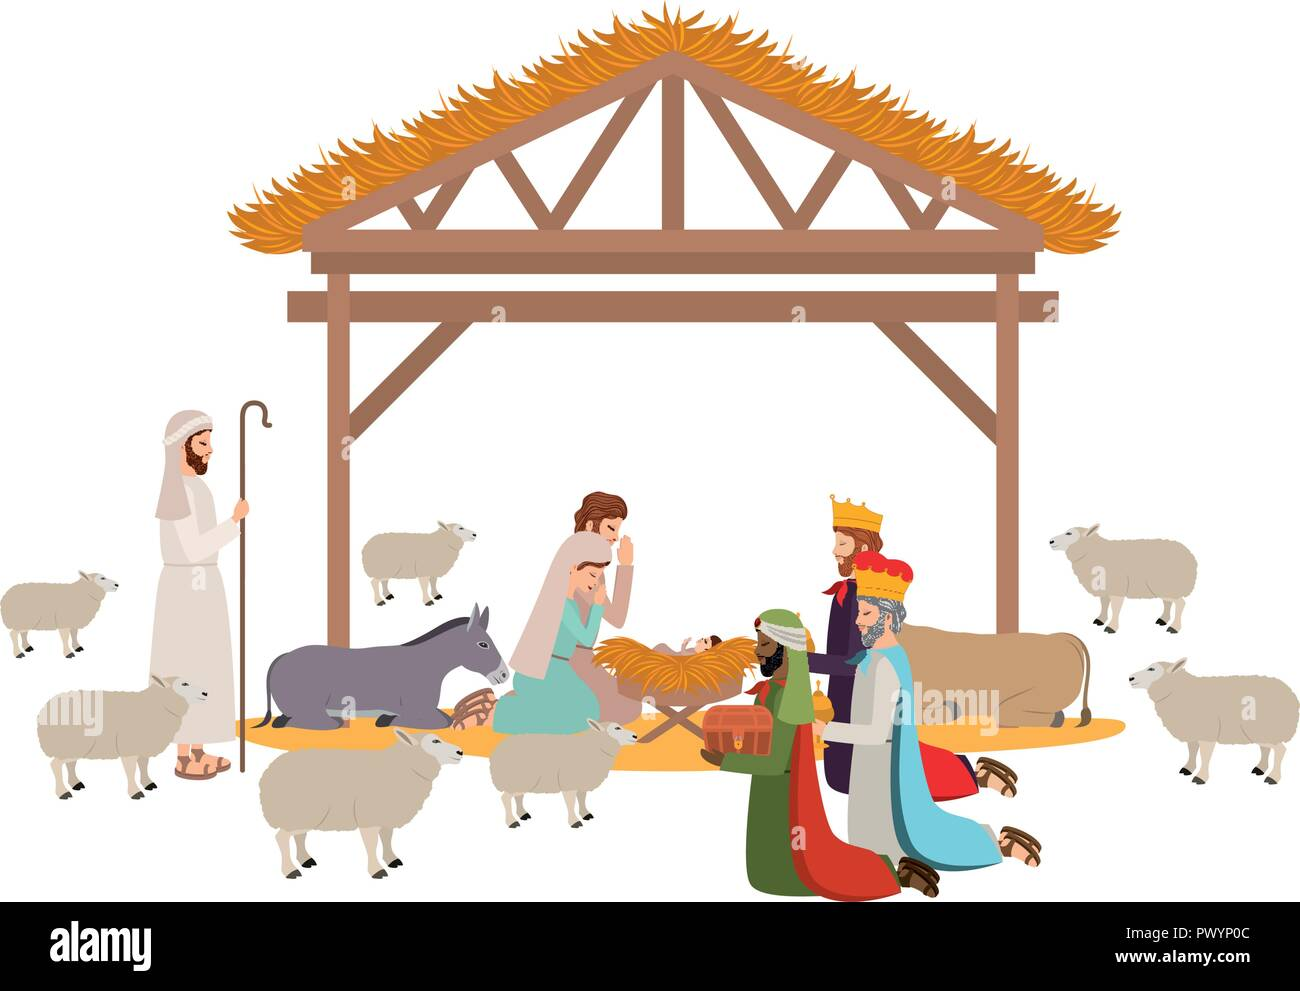 holy family in stable with wise kings manger - Stock Vector